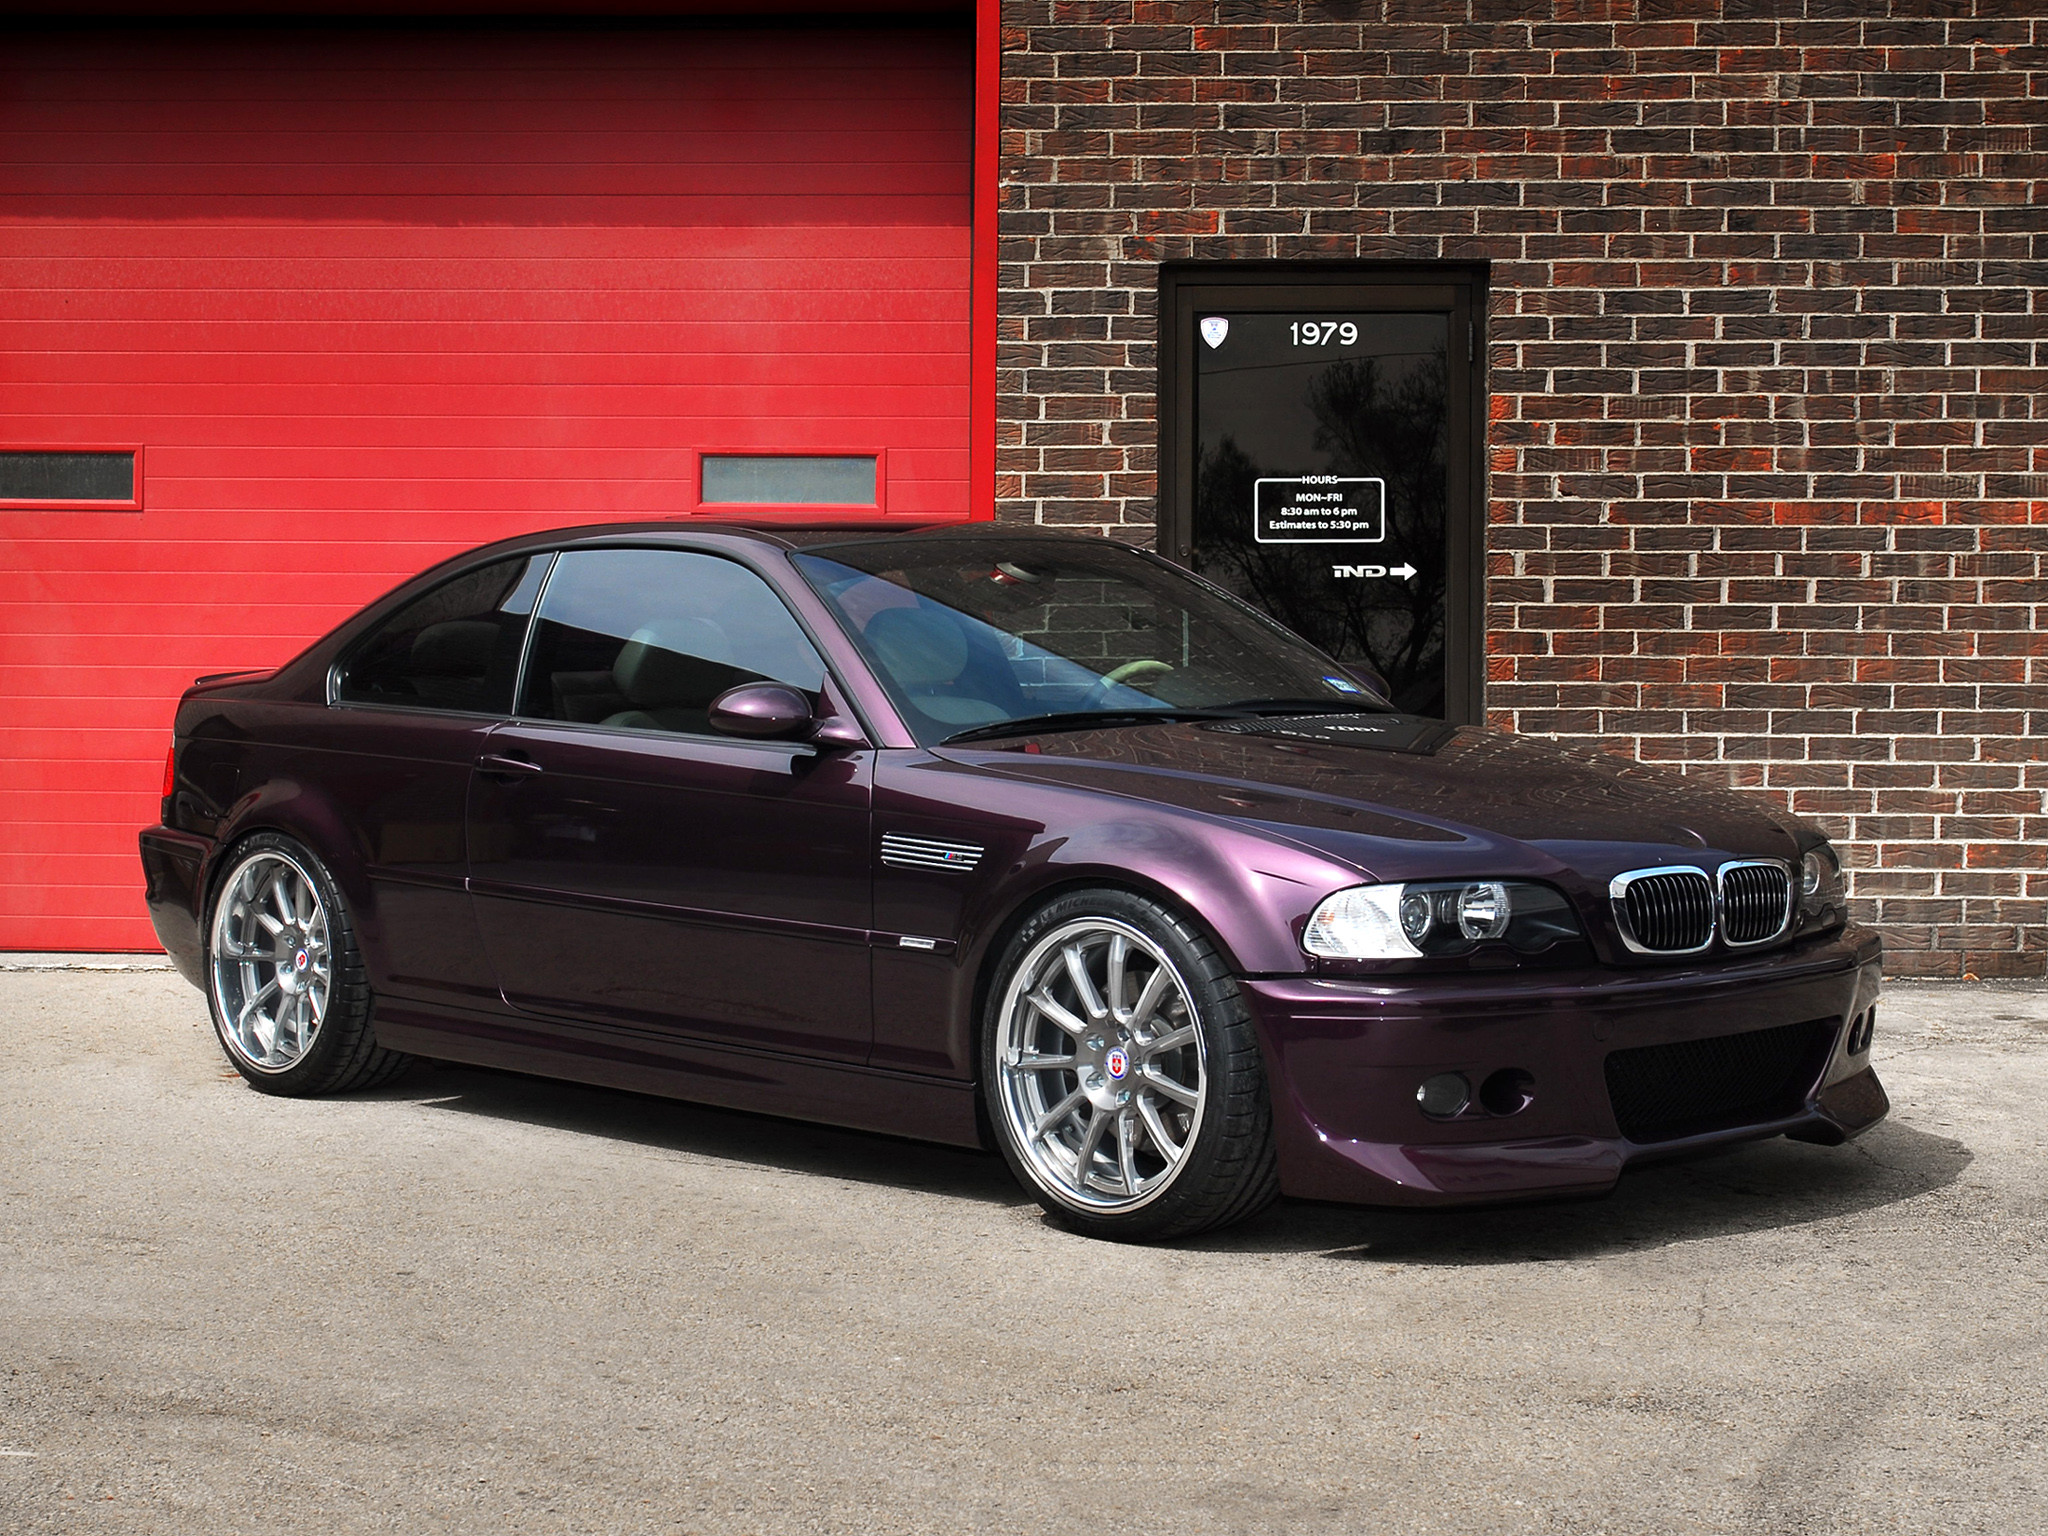 2048x1536 BMW M3 Coupe IND E46 WallpapersBmw M3 Wallpaper | Bmw M3 Wallpaper